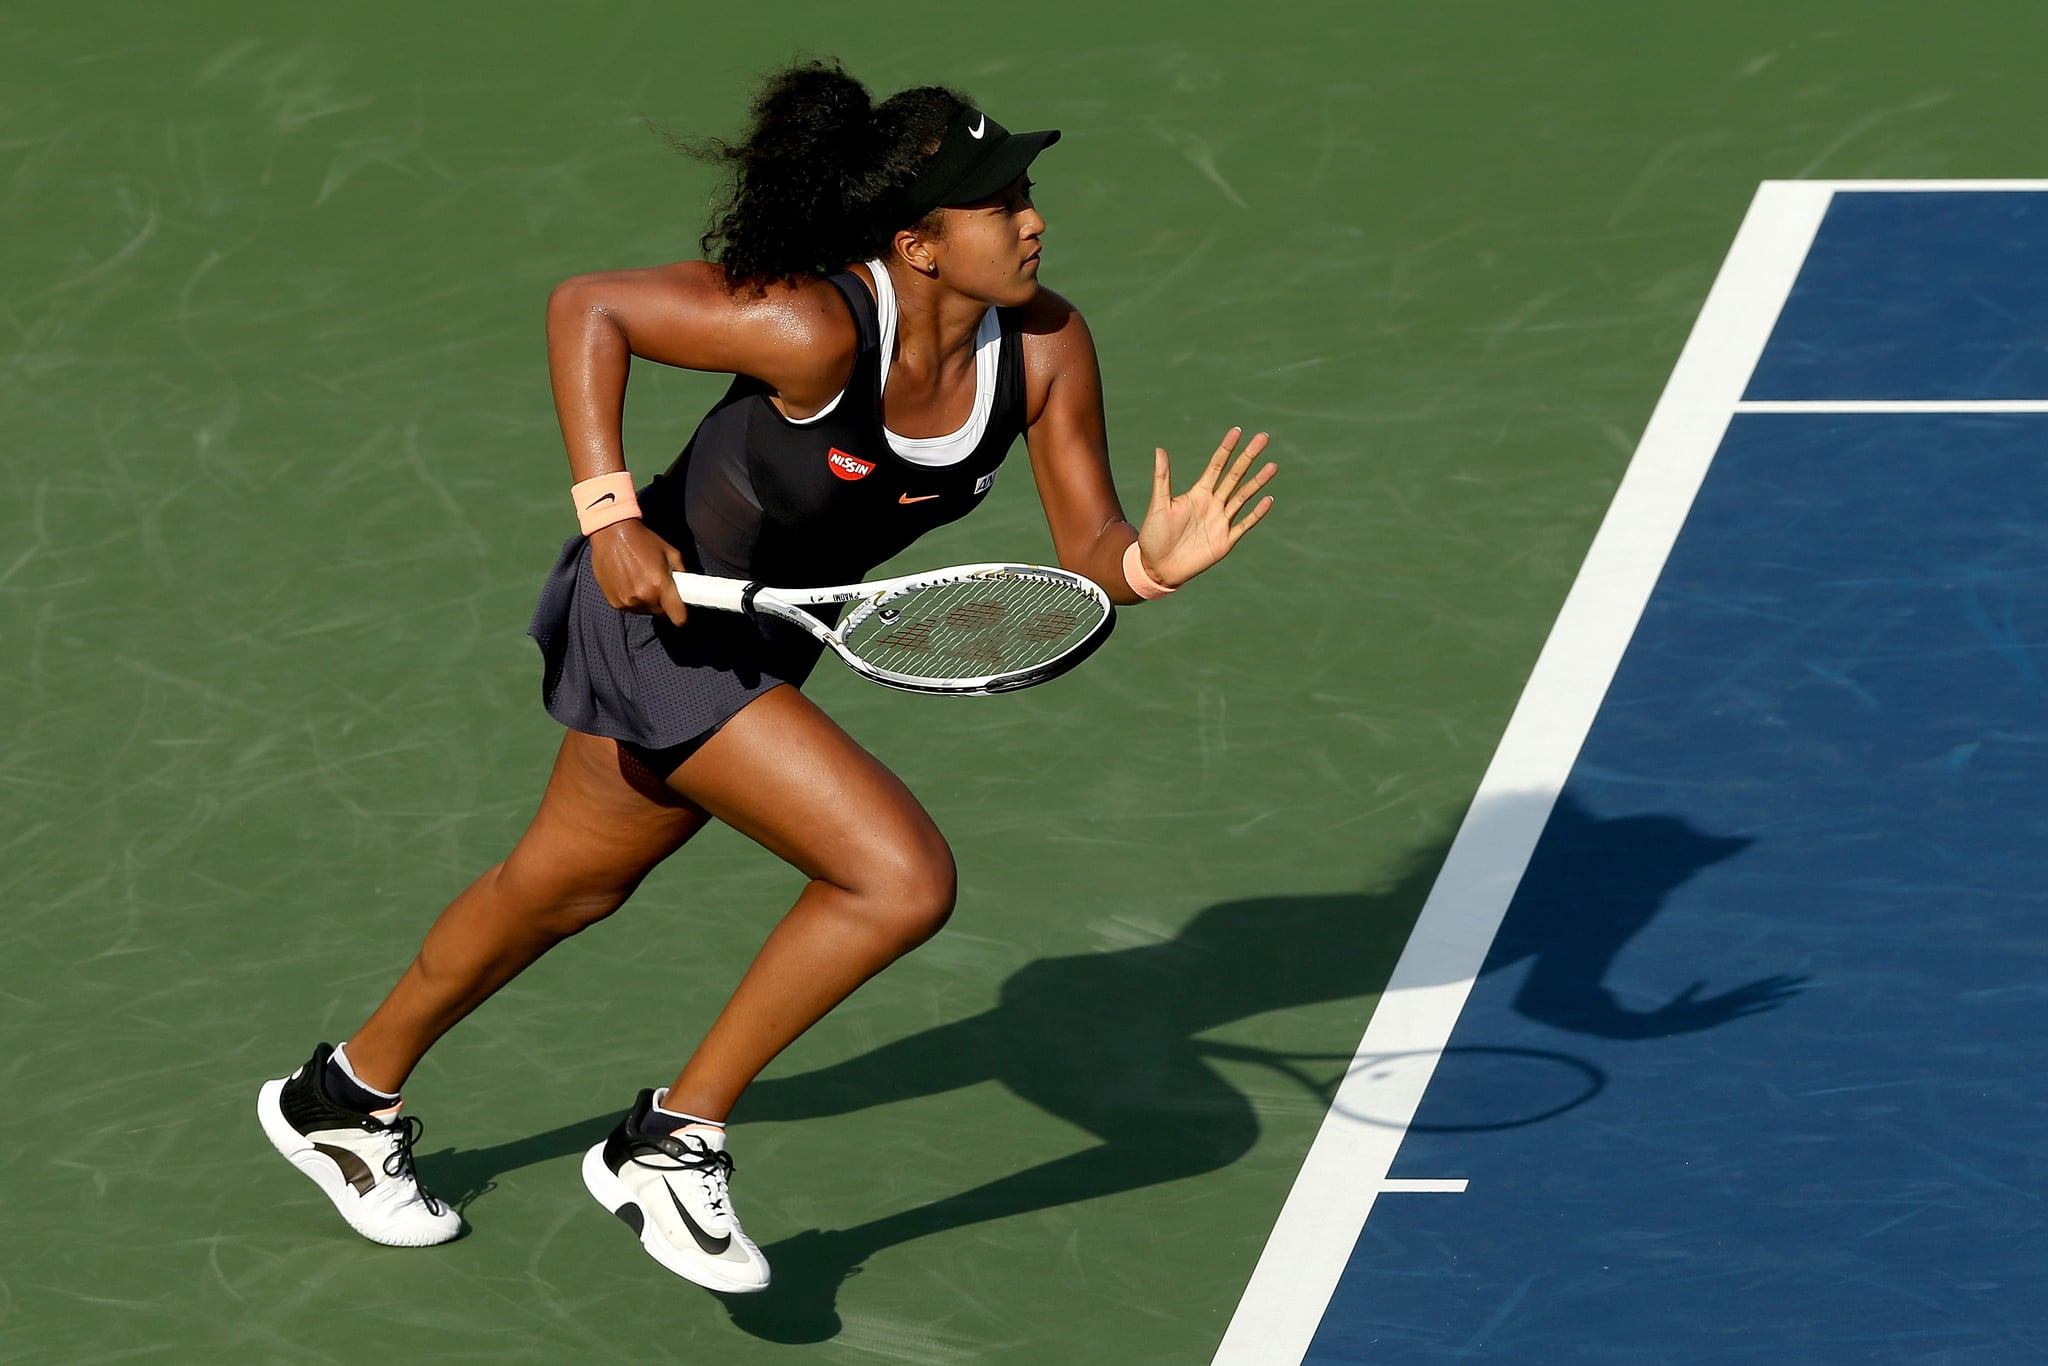 NEW YORK, NEW YORK - AUGUST 24: Naomi Osaka of Japan plays Karolina Muchova of Czech Republic during the Western & Southern Open at the USTA Billie Jean King National Tennis Center on August 24, 2020 in the Queens borough of New York City. (Photo by Matthew Stockman/Getty Images)